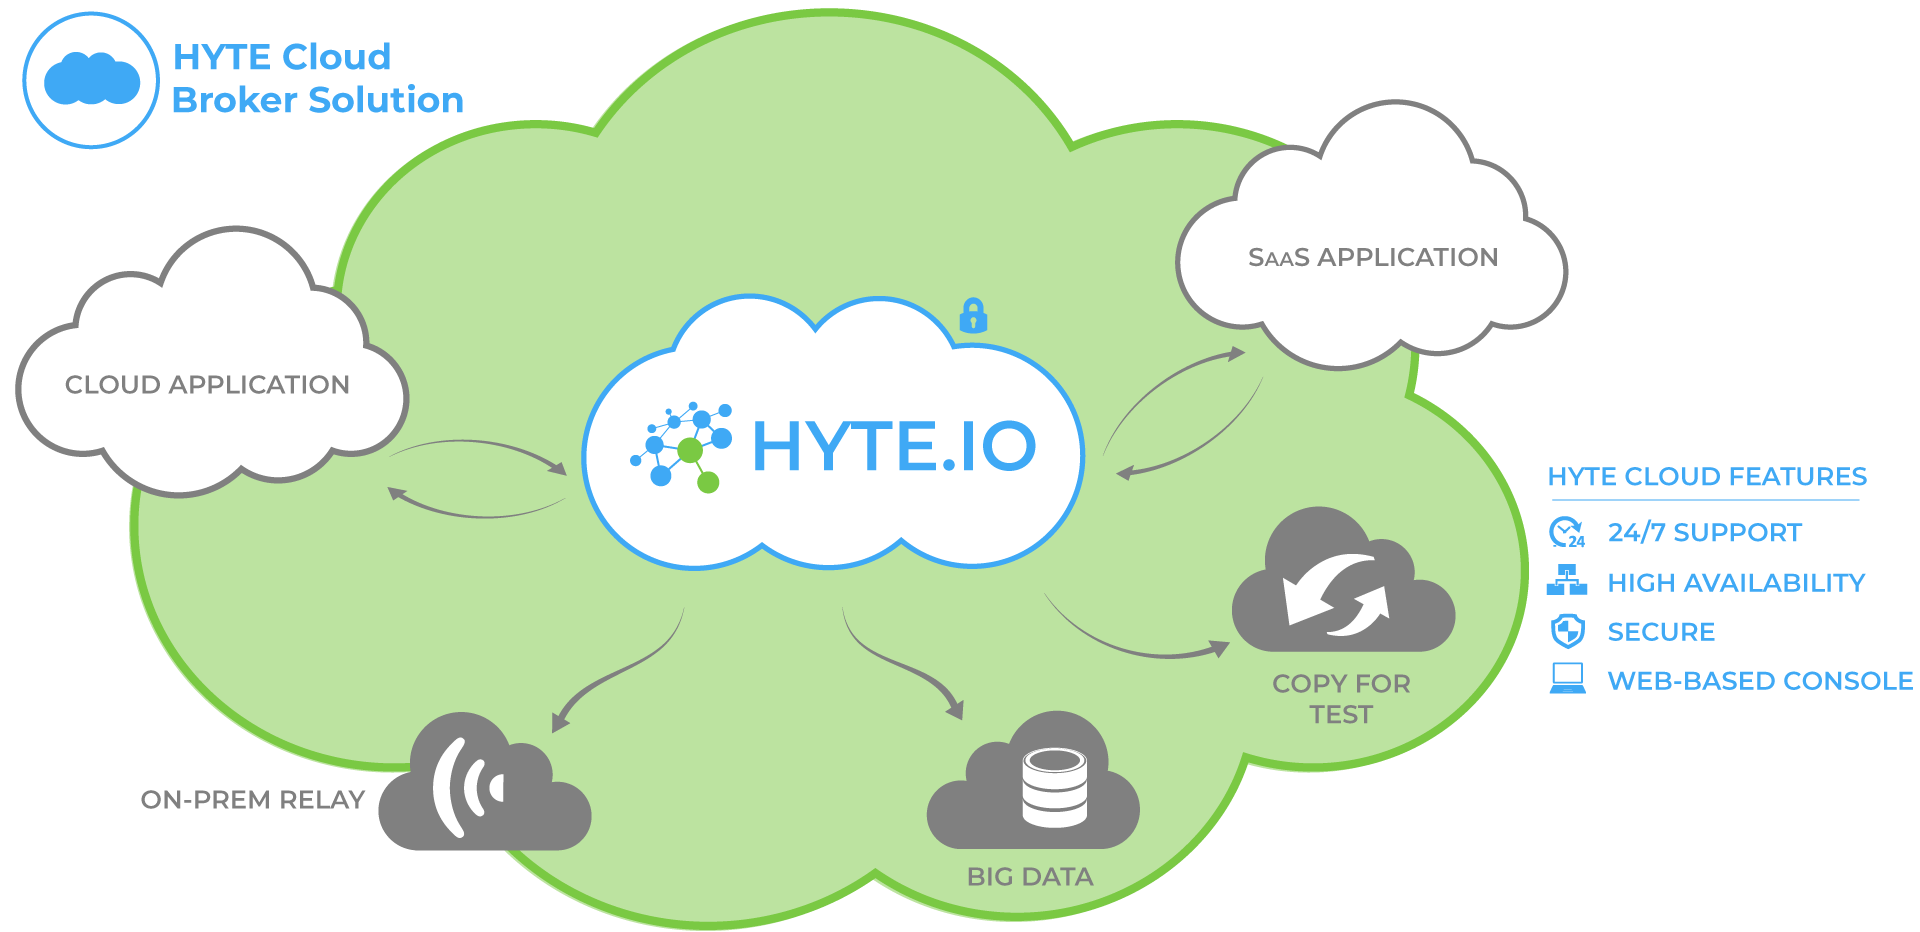 HYTE Cloud Broker Solution Graphic